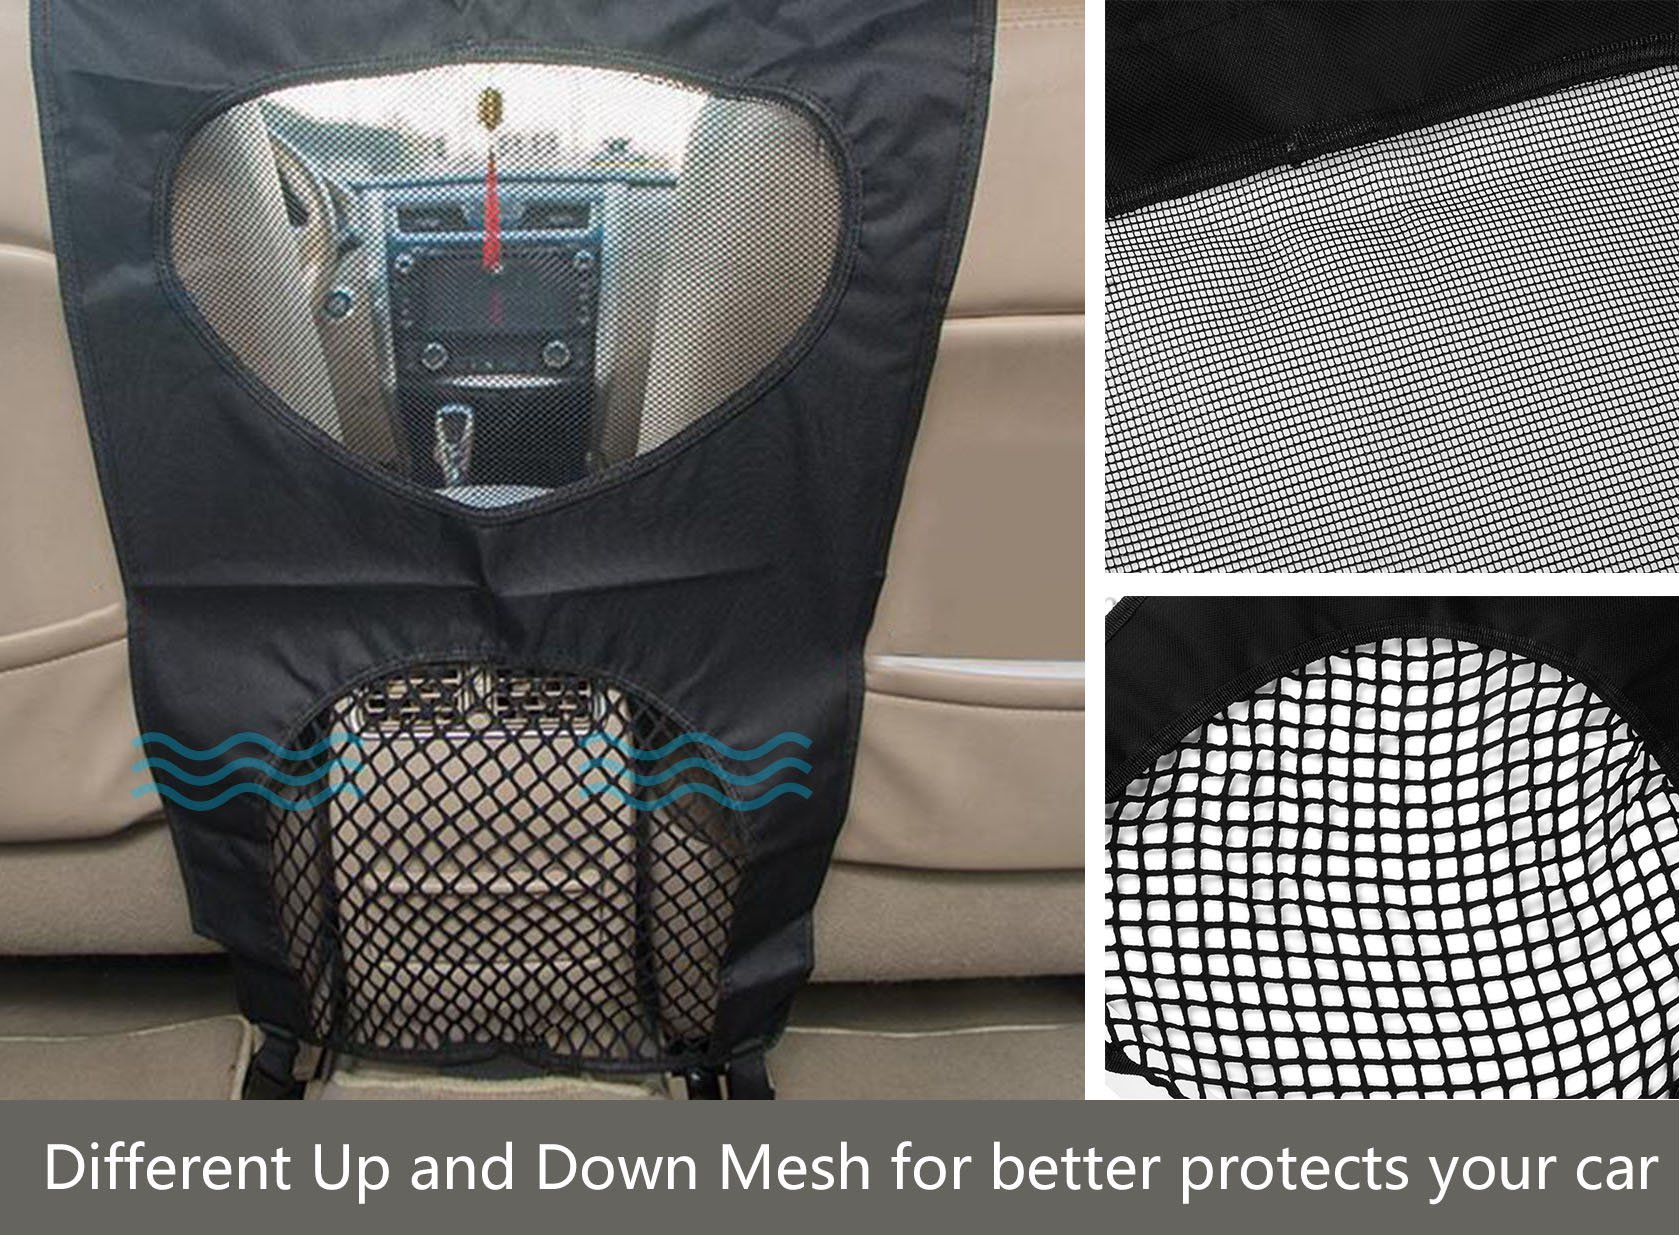 Lifepul Pet Net Barrier (TM) Dogs Backseat Barrier Mesh Obstacle Dog Car Fence Mesh, to Keep Your Pets and Drivers Safety inTravel, One Size Fit Most & Easy to Install for Car,SUV,Truck, by Lifepul (Image #5)